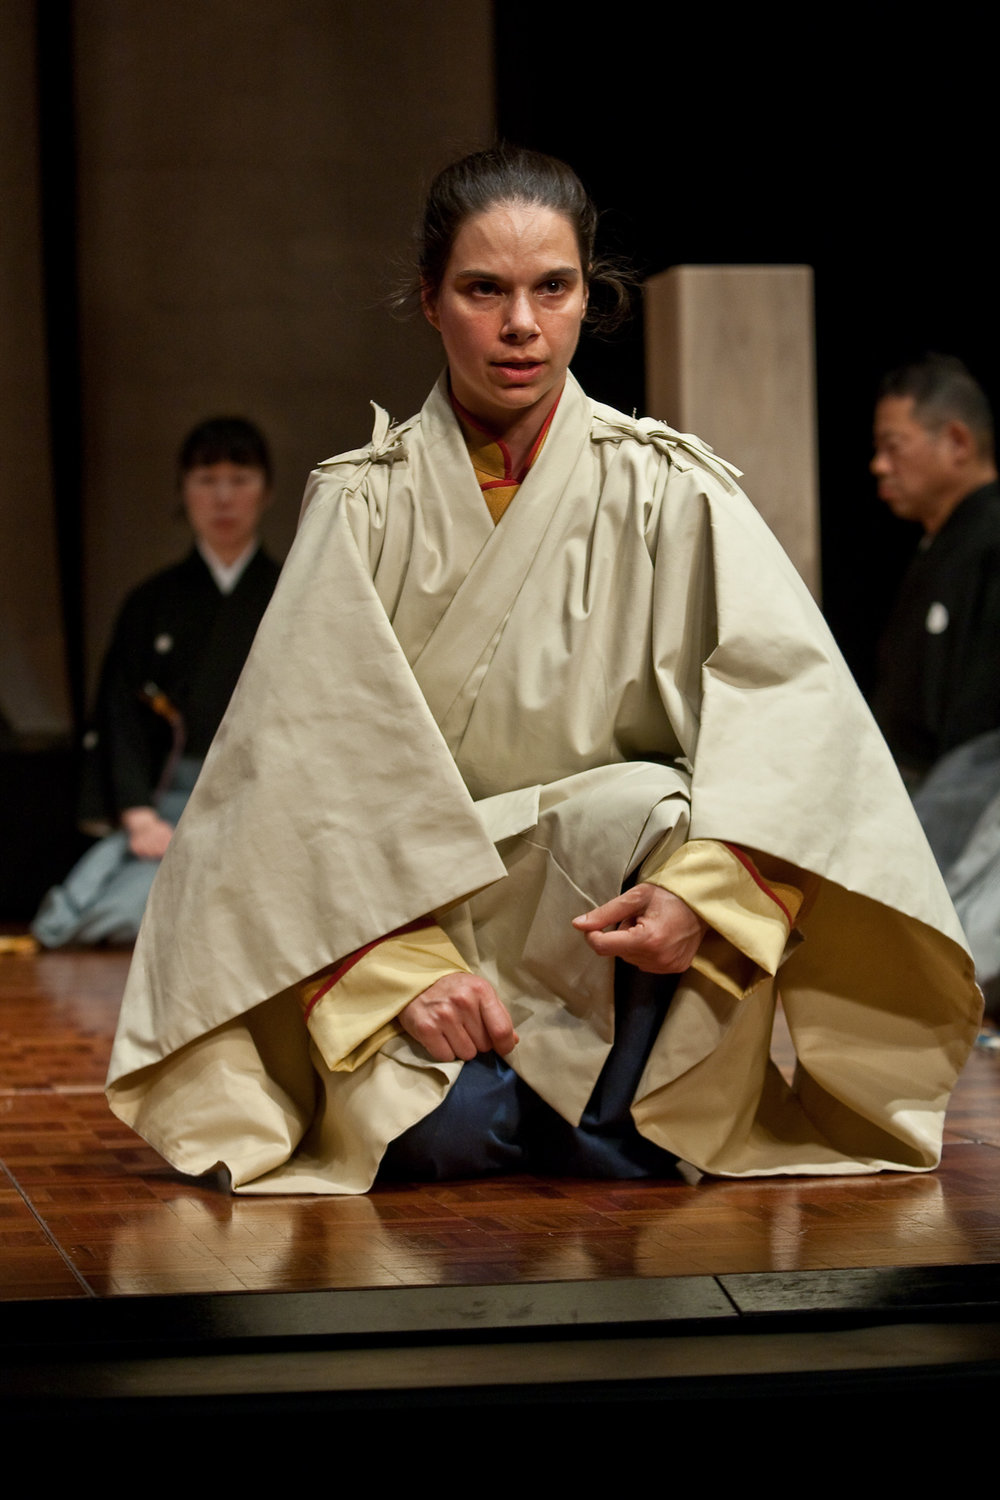 Jubilith Moore - Performed the role of the Waki (the traveller) in both the European & Asian tours of Pagoda (2009 & 2011)Photography by Clive Barda